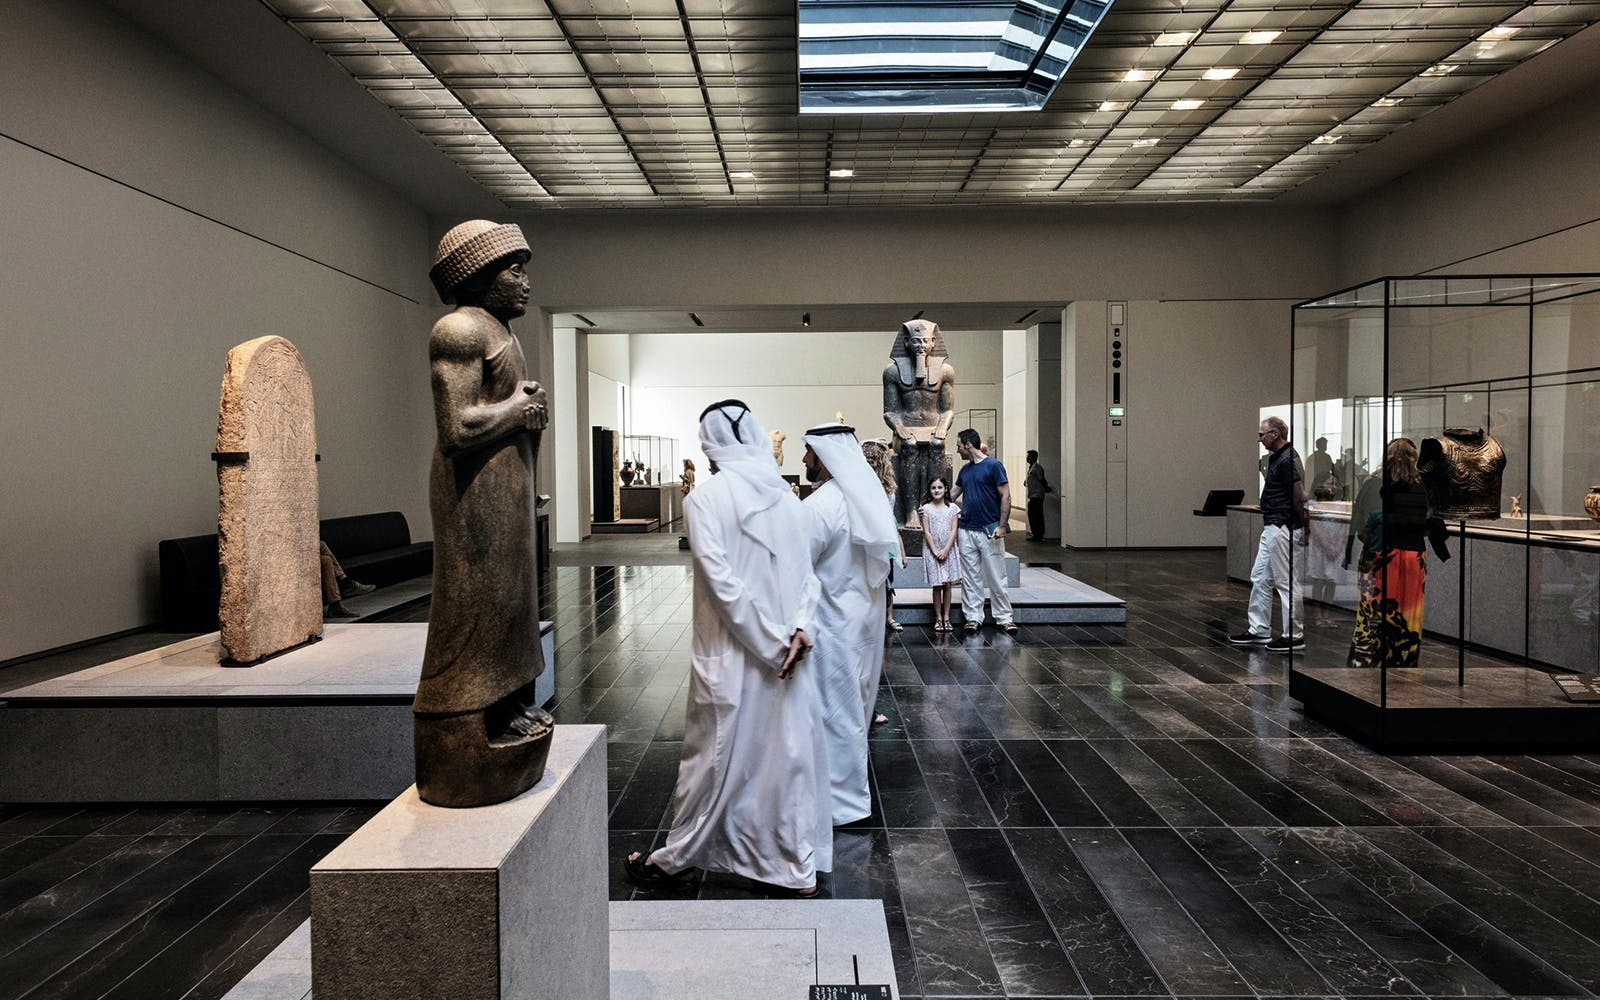 louvre abu dhabi - skip the line tickets-11